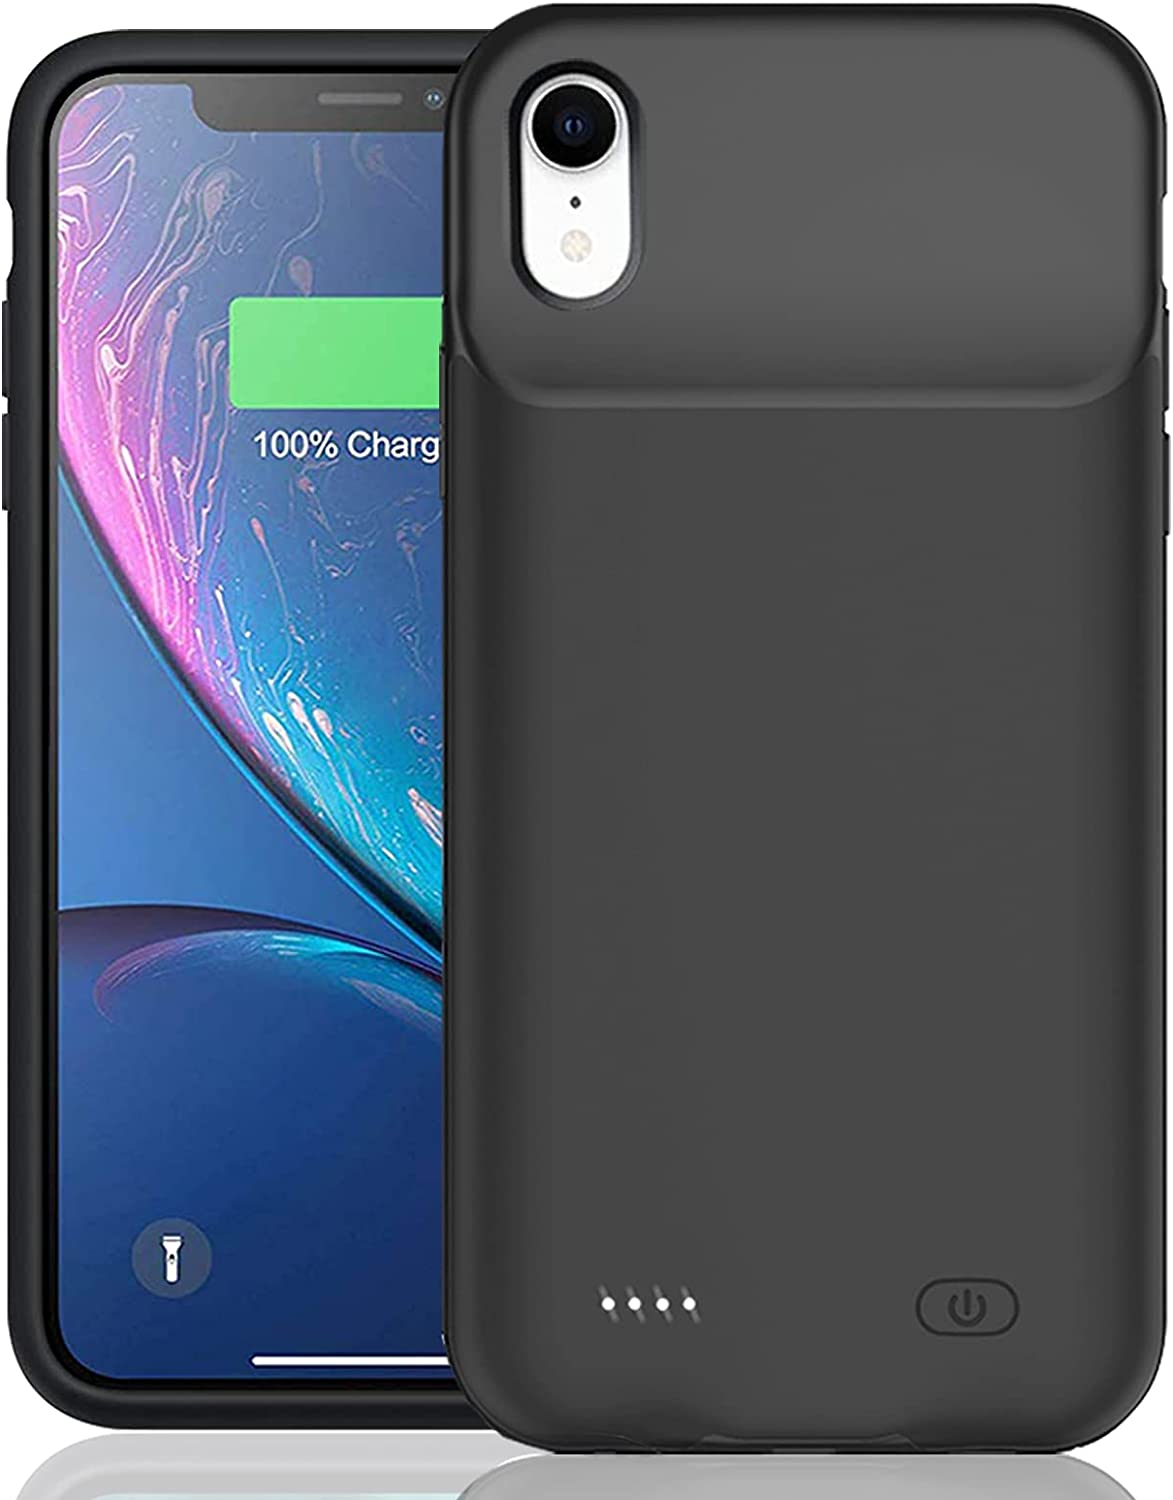 Battery Case for iPhone XR, Enhanced 7000mAh Smart Rechargeable Portable Protective Charging Case Extended Battery Backup Pack Compatible with iPhone XR (6.1 inch) Charger Case (Black)